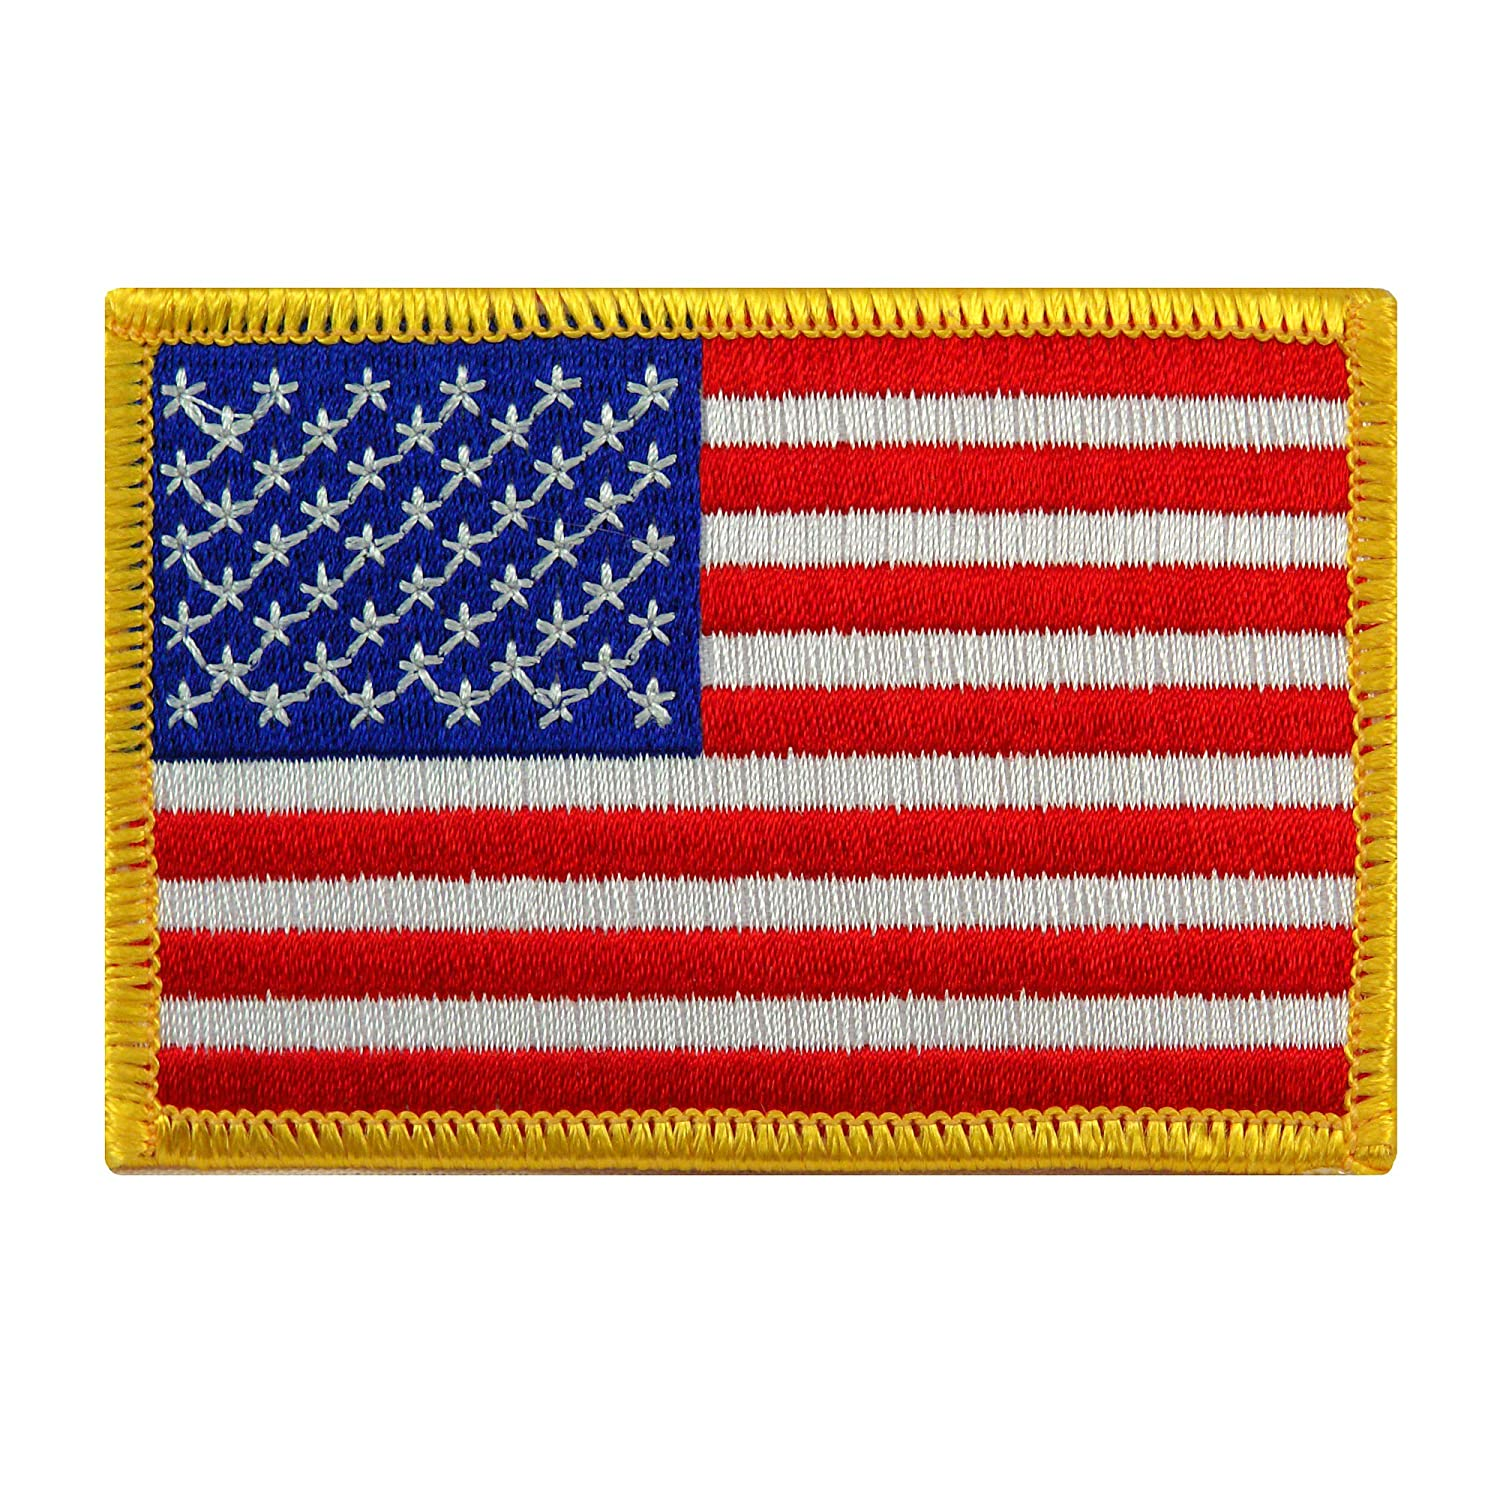 Amazon.com  American Flag Embroidered Patch Gold Border USA United States  of America Military Uniform Emblem  Clothing 06cf7ced5